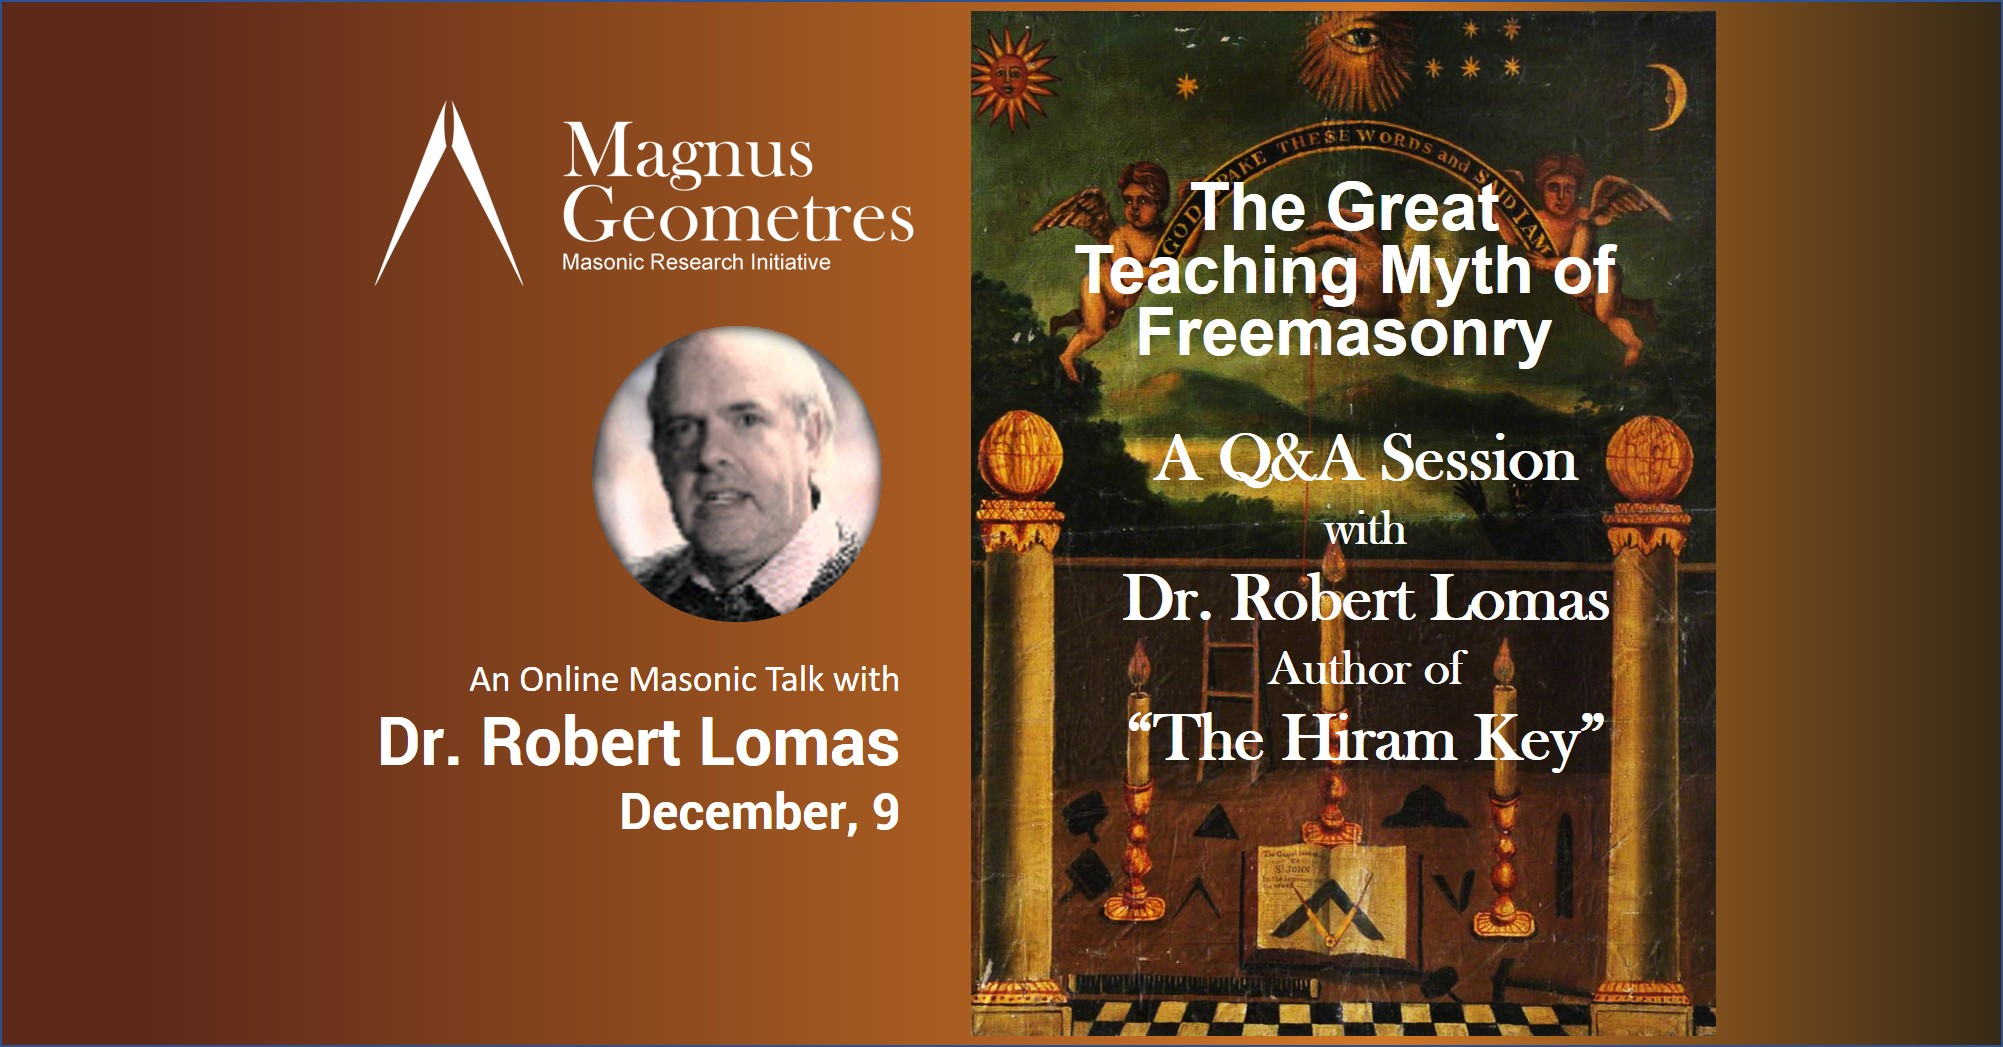 ROBERT LOMAS Event The Great Teaching Myth of Freemasonry By Dr. Robert Lomas